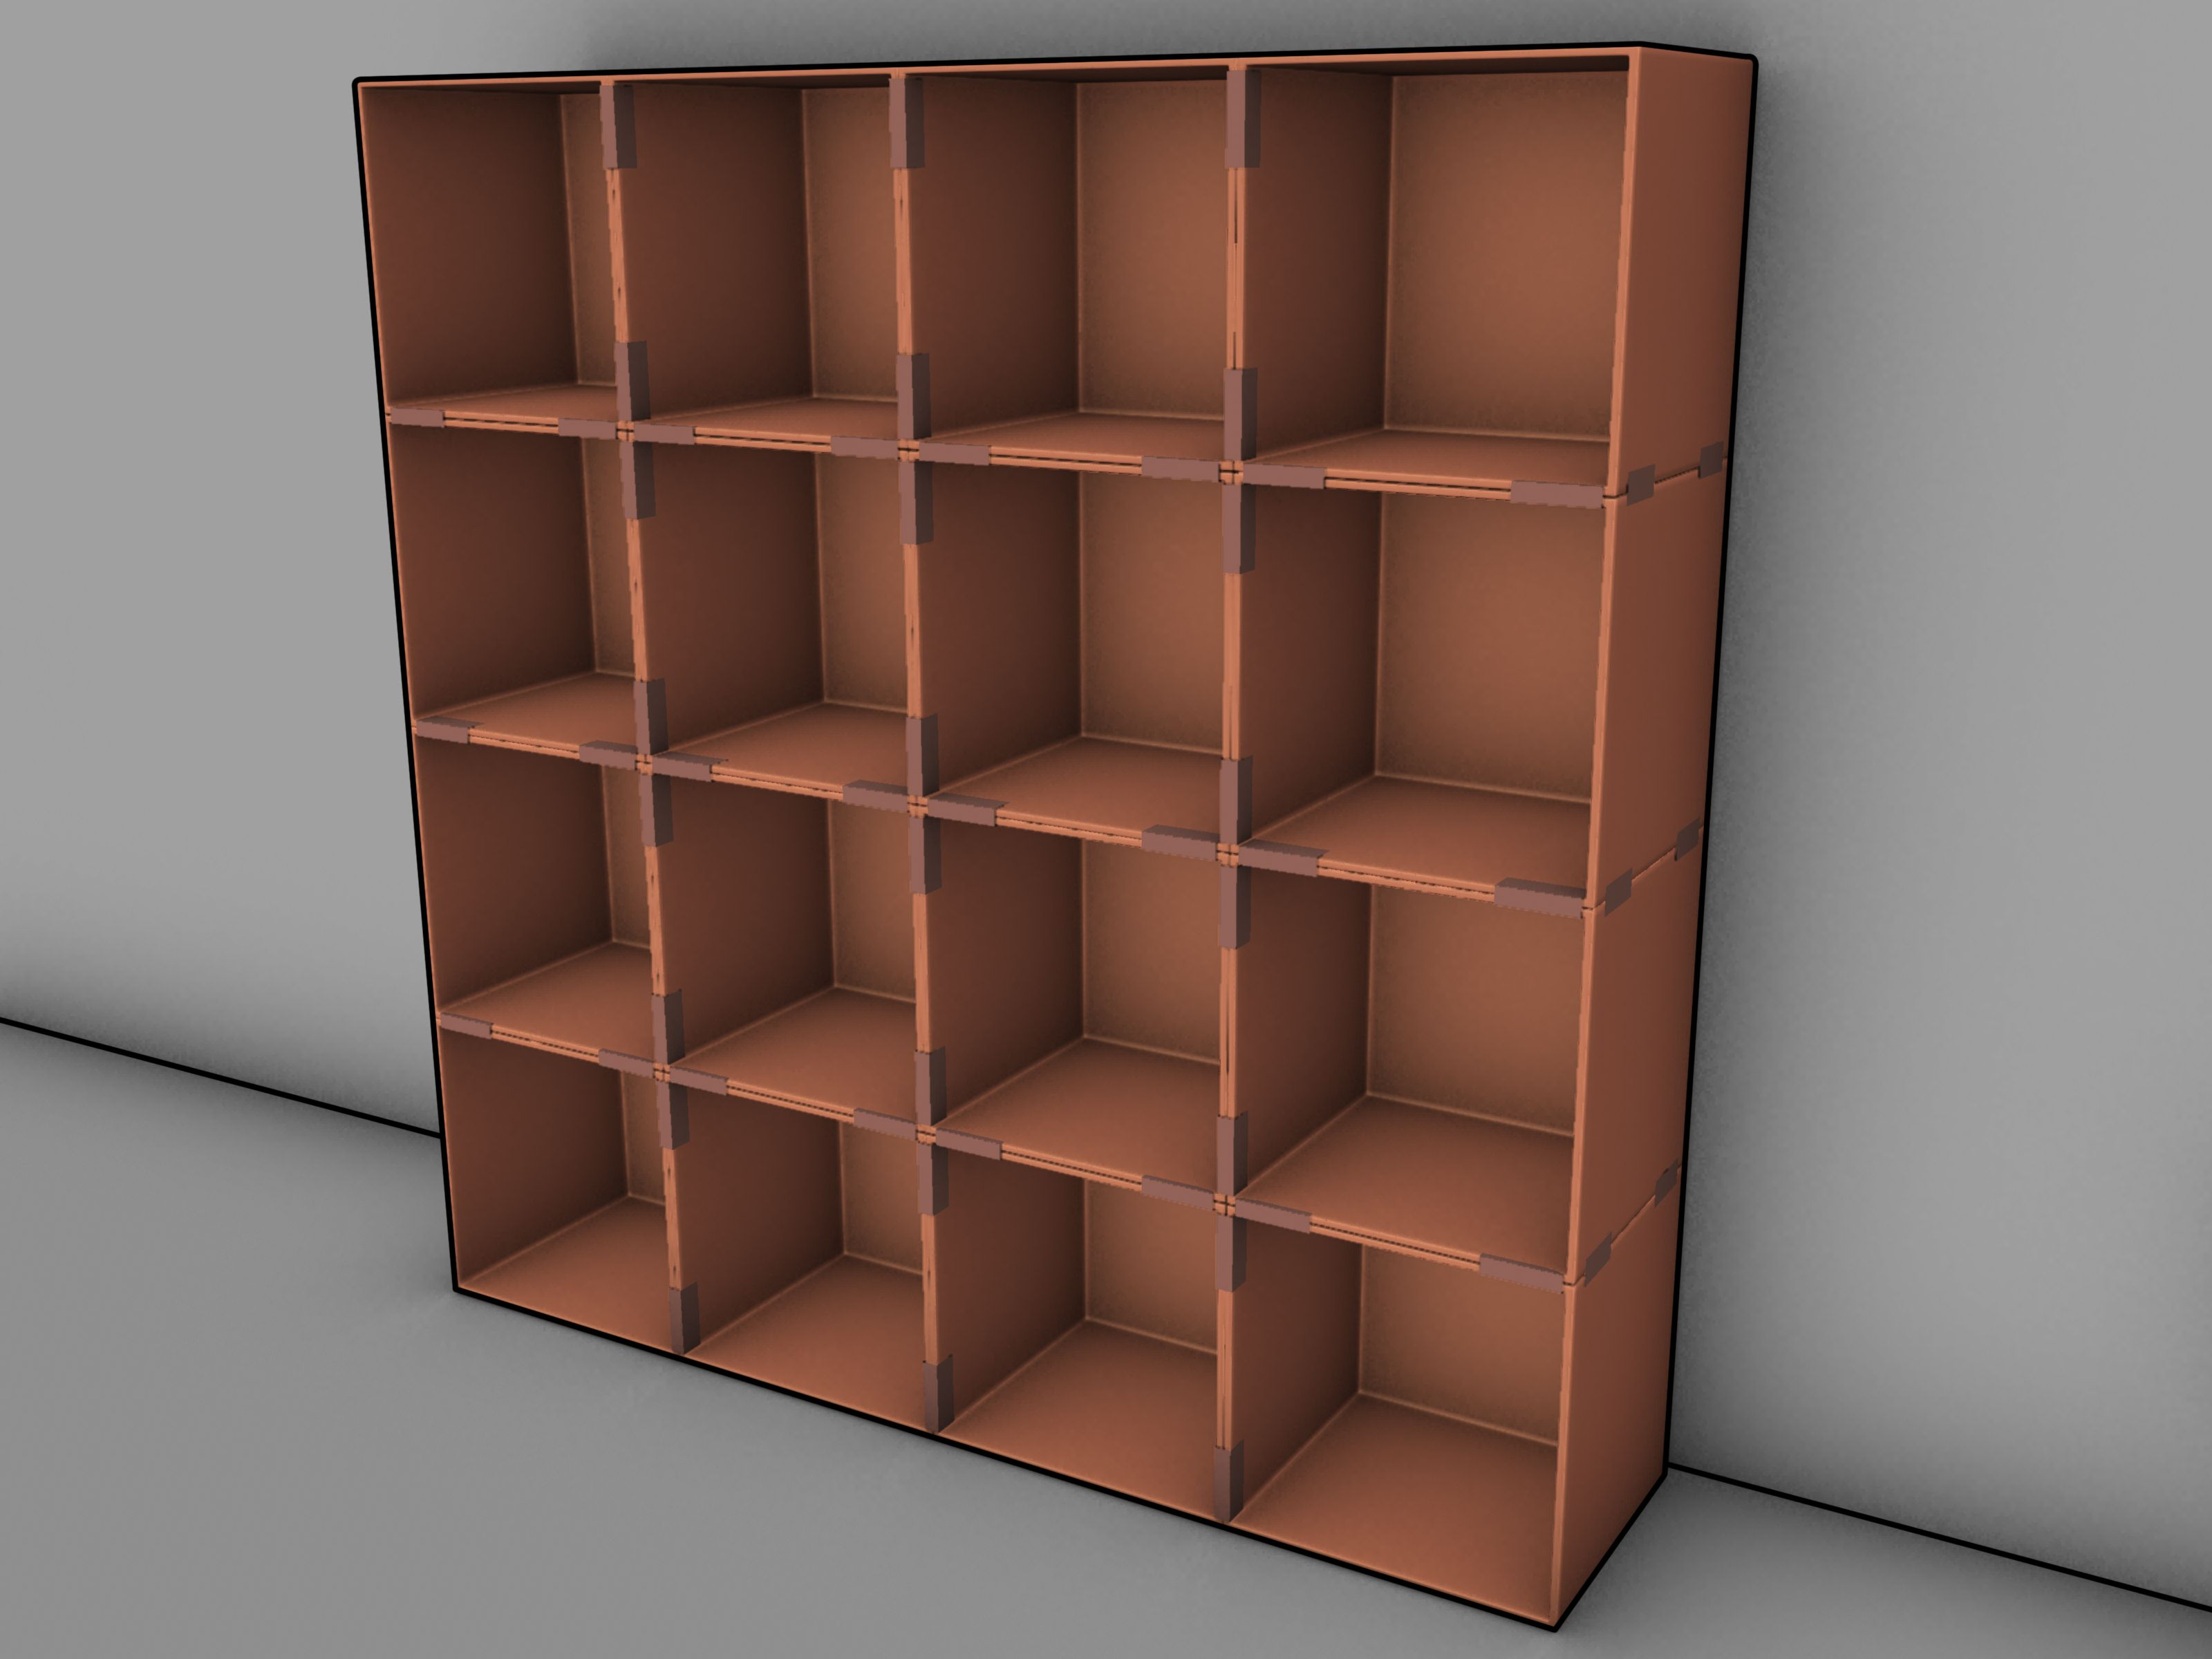 shelves Cardboard box storage